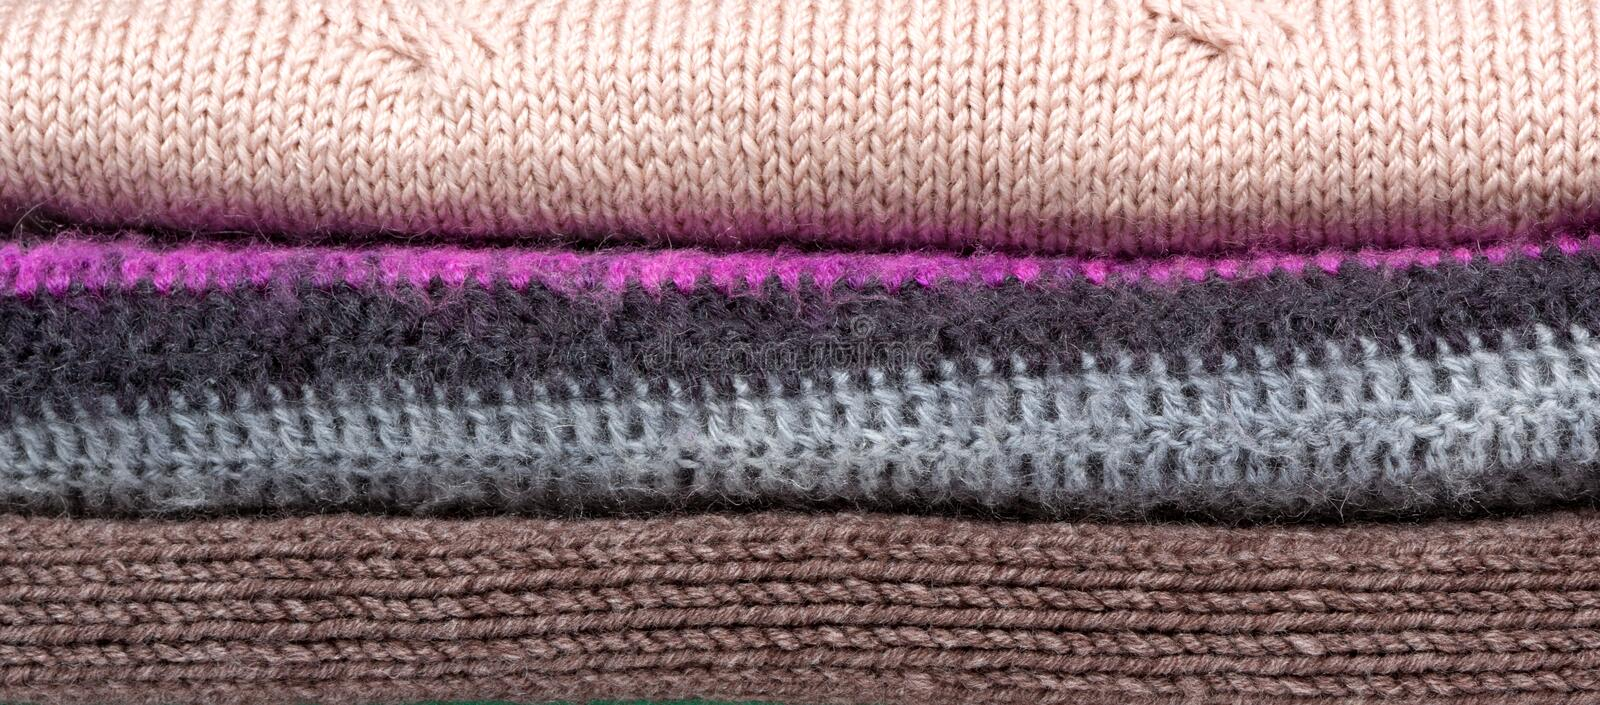 Pile of warm wool clothing. Closeup knitted texture stock image